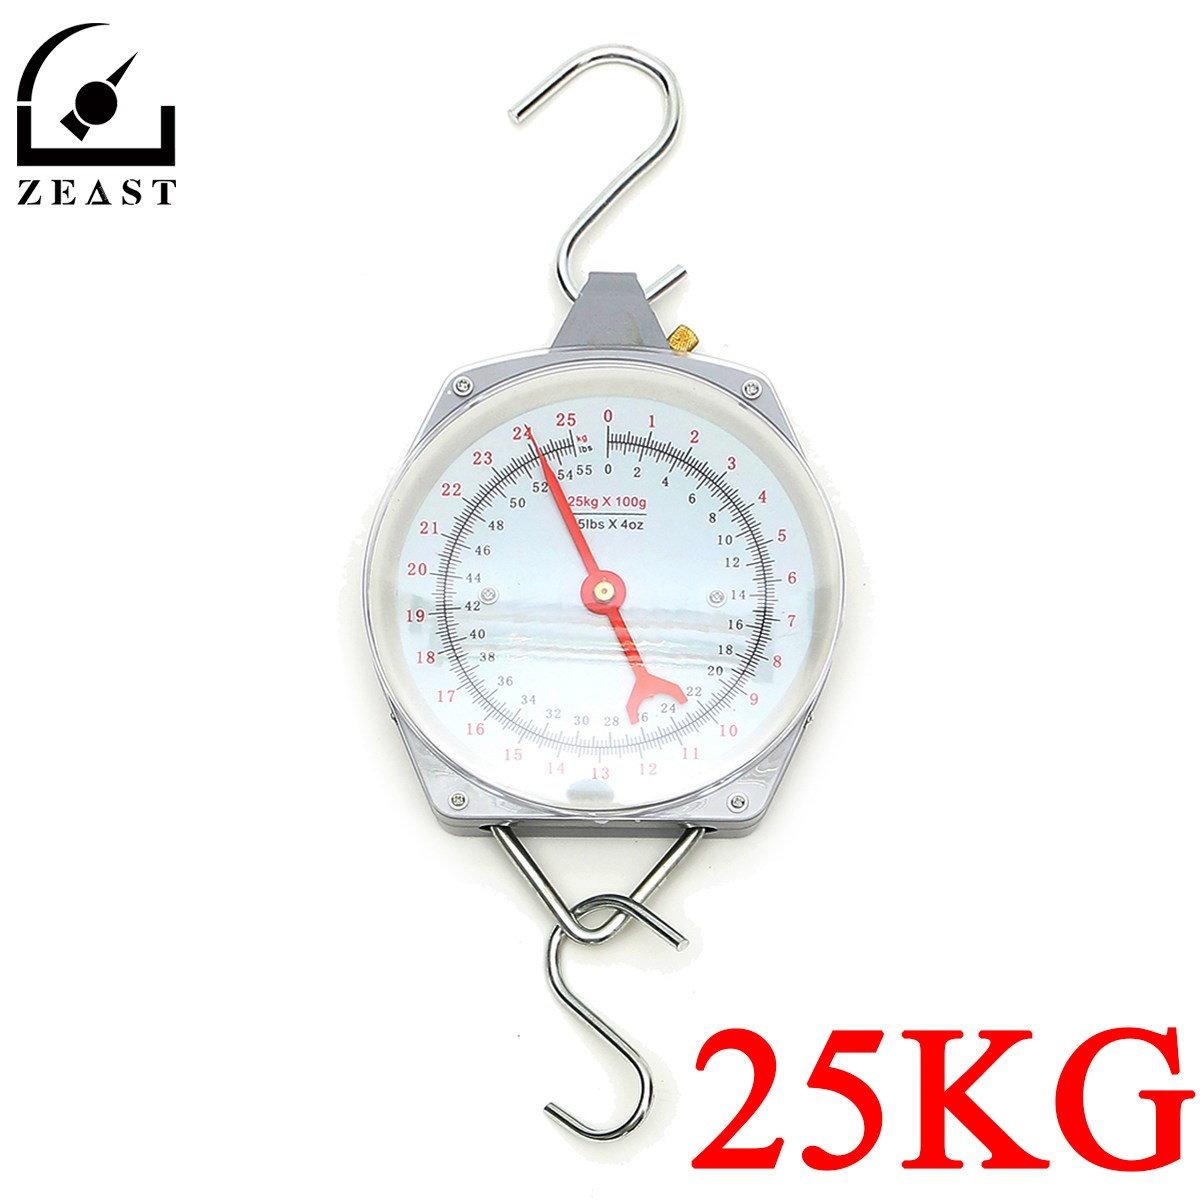 25KG/55lbs Hanging Scale With Hanging Hook Alloy Quality Heavy Weighing Mechanial Fishing 100g Increments цены онлайн